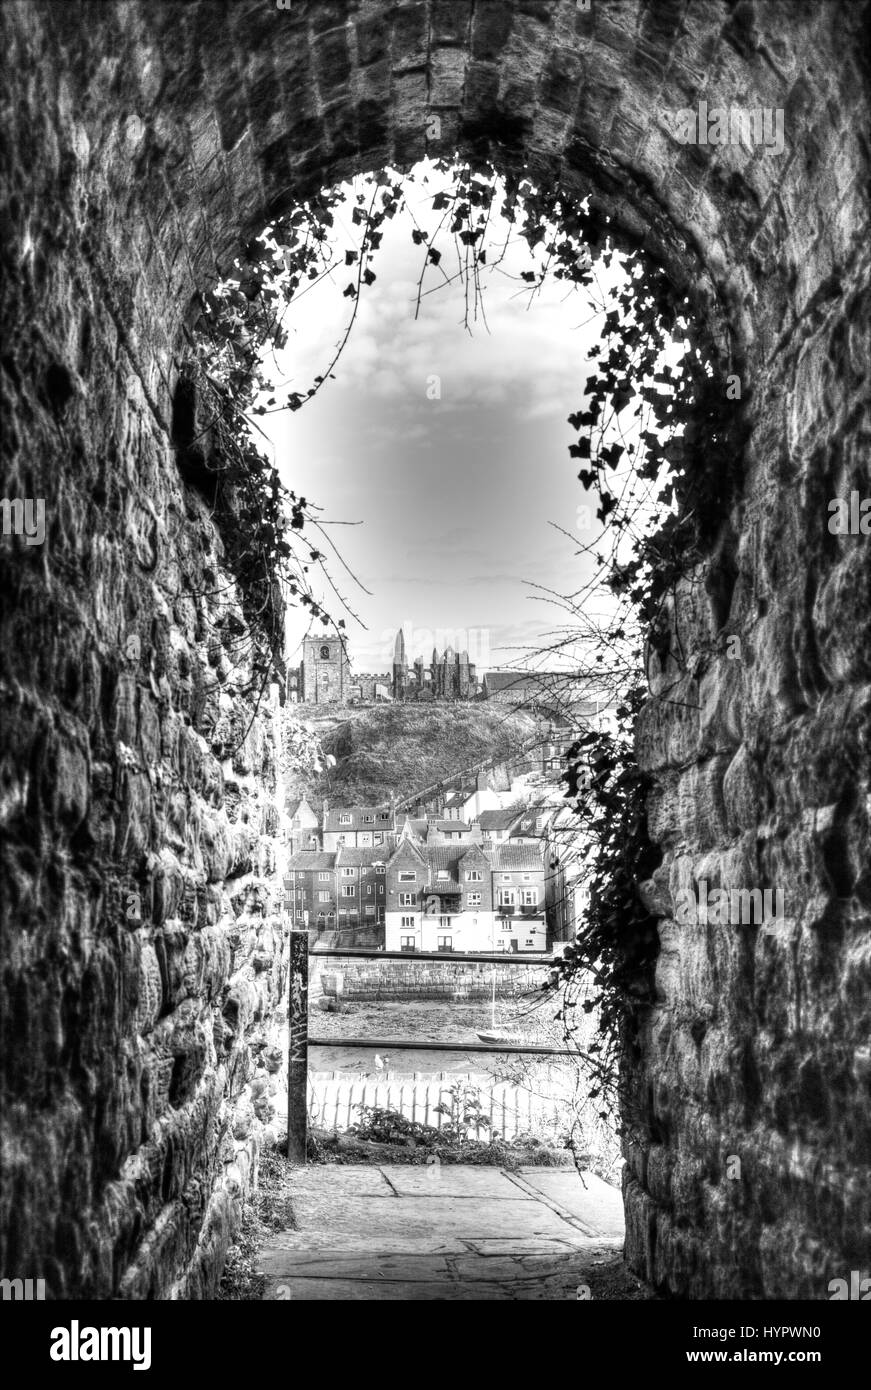 Whitby Abbey Whitby town Whitby town Yorkshire UK England framed by alley alleyway black and white dramatic print - Stock Image